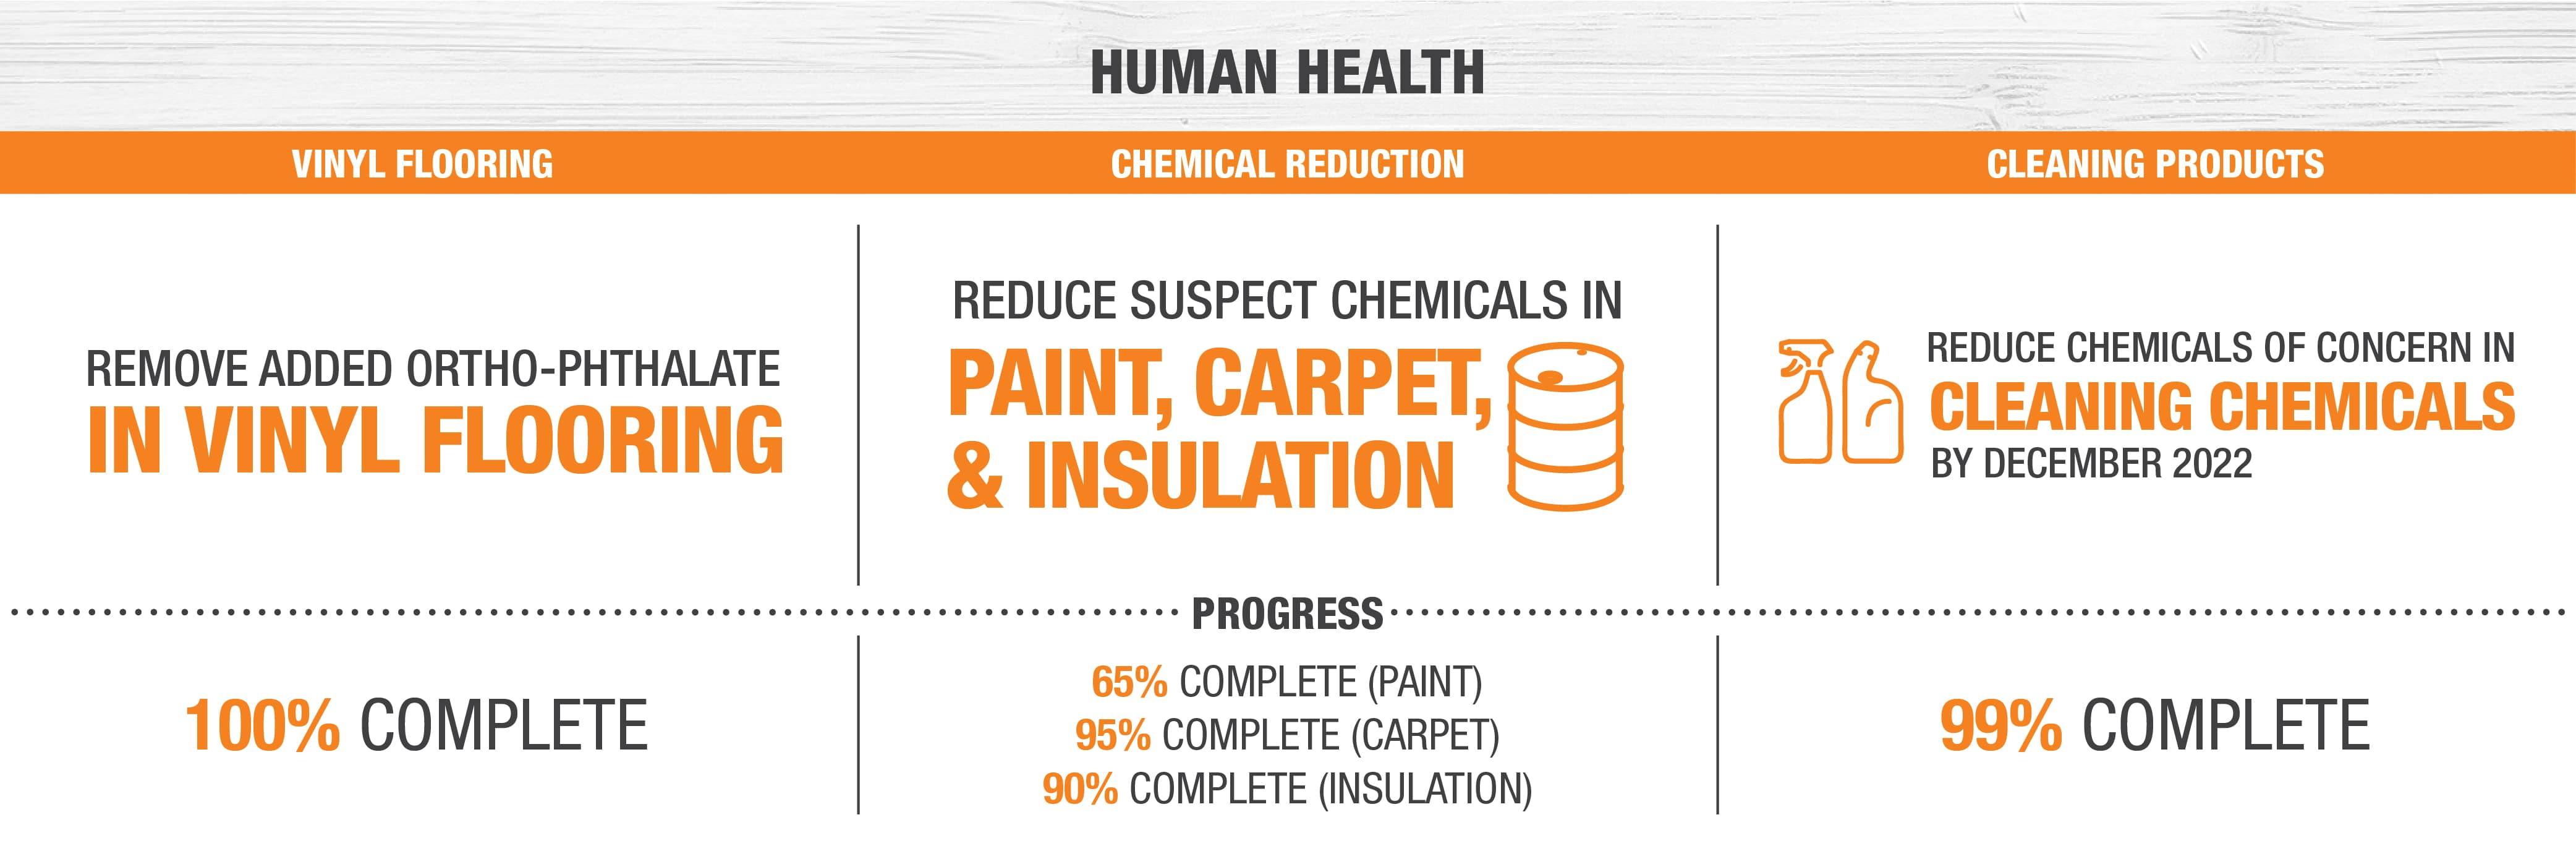 Remove added ortho-phthalate in vinyl flooring. Reduce supect chemicals in paint, carpet & insulation. Reduce chemicals of concern in cleaning chemicals by December 2022.